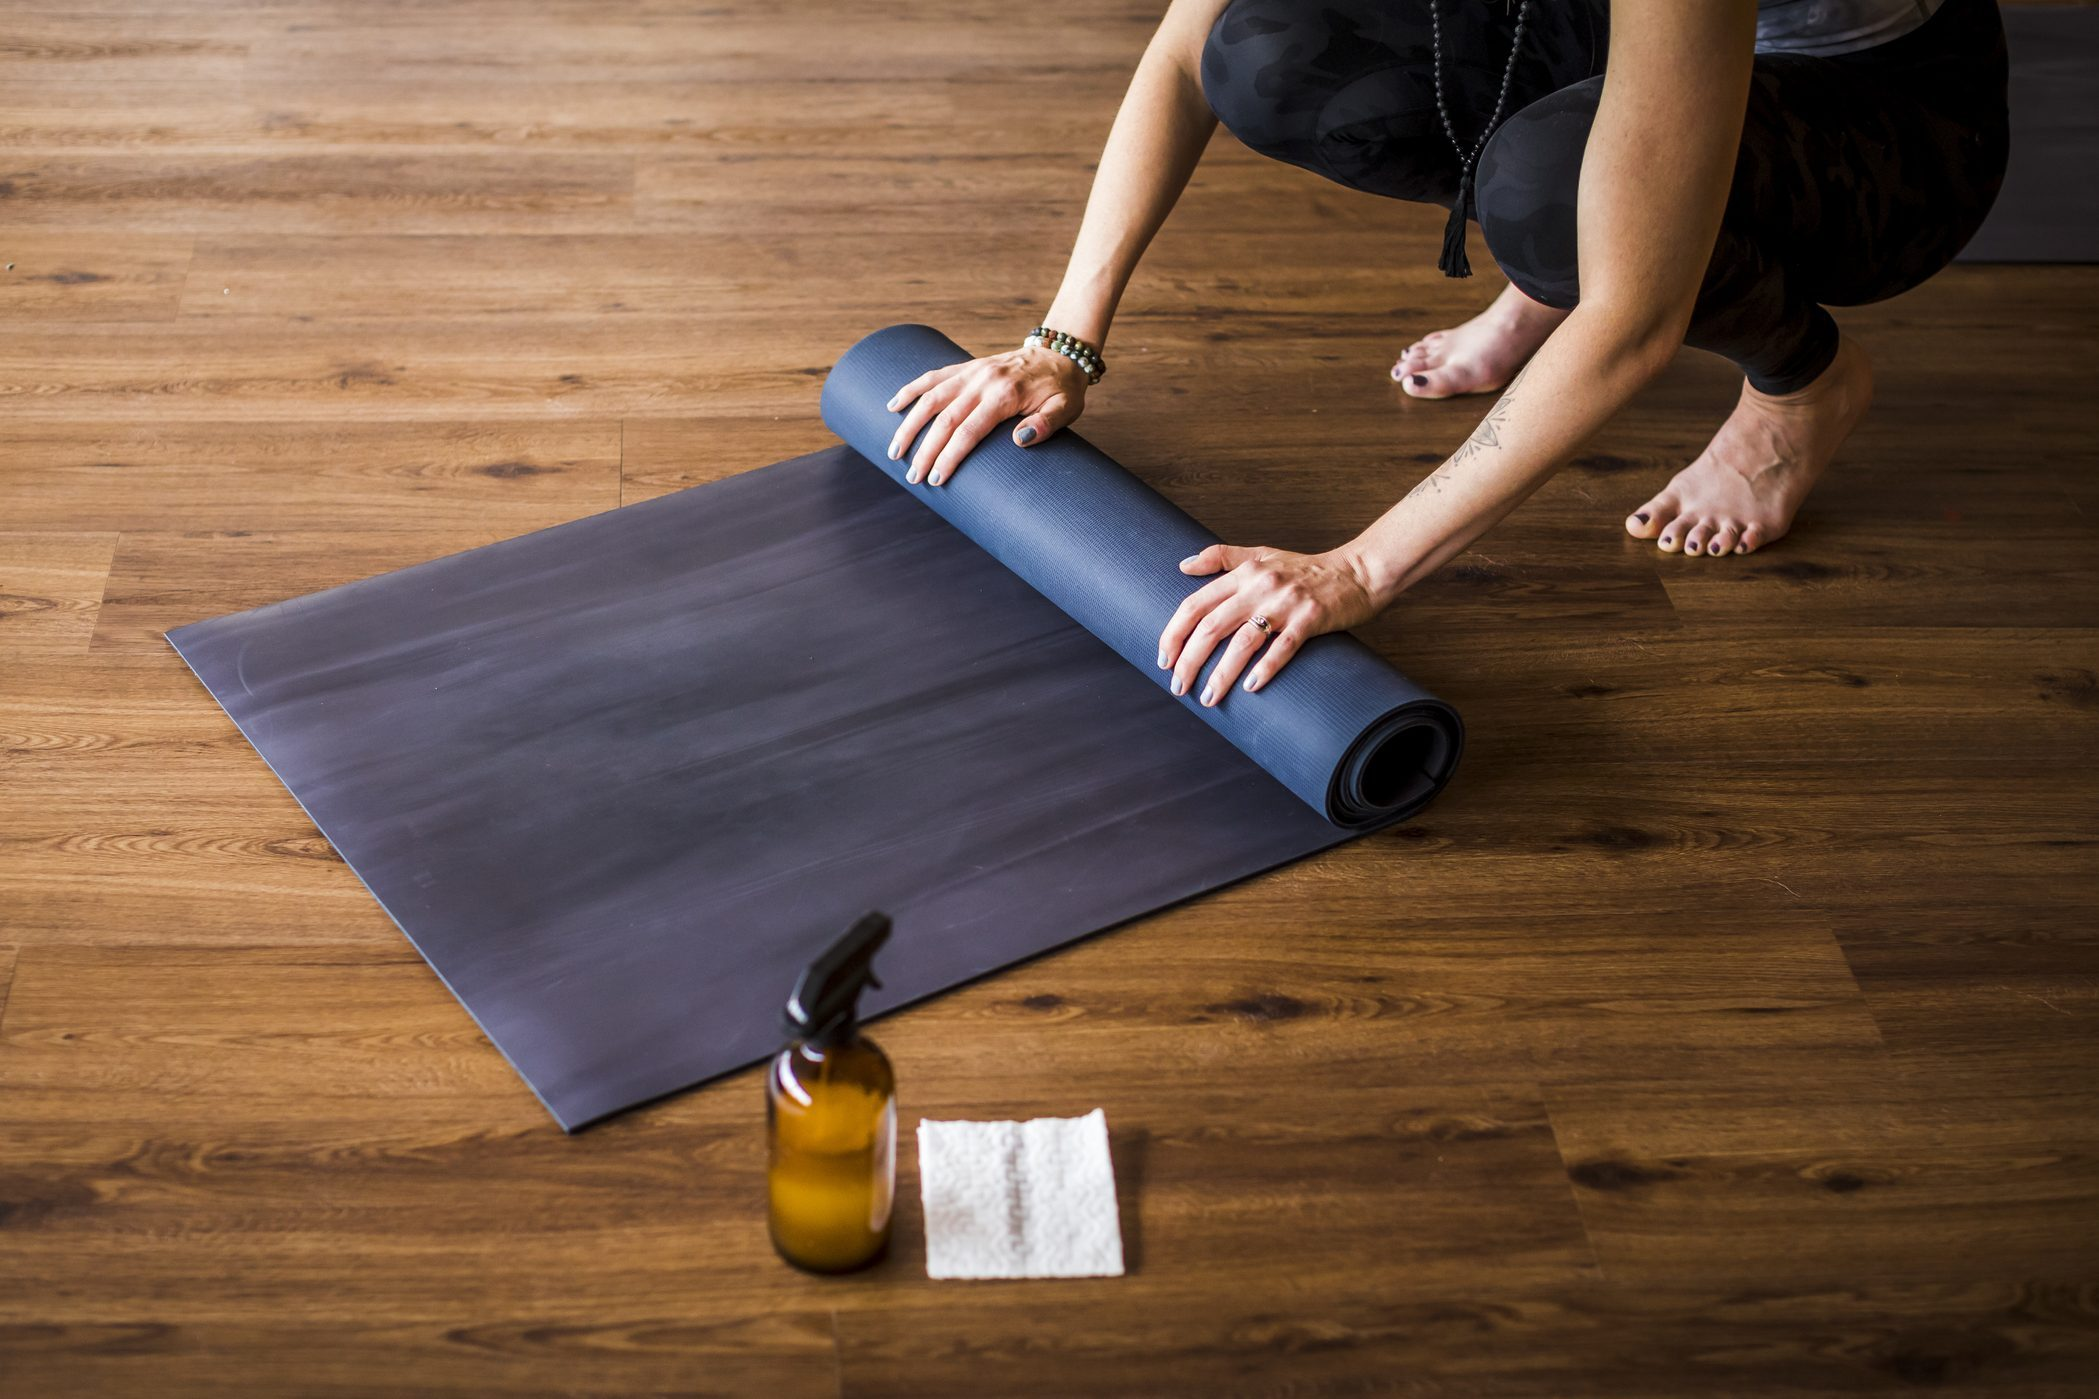 Woman rolling up yoga mat with sanitizer nearby.